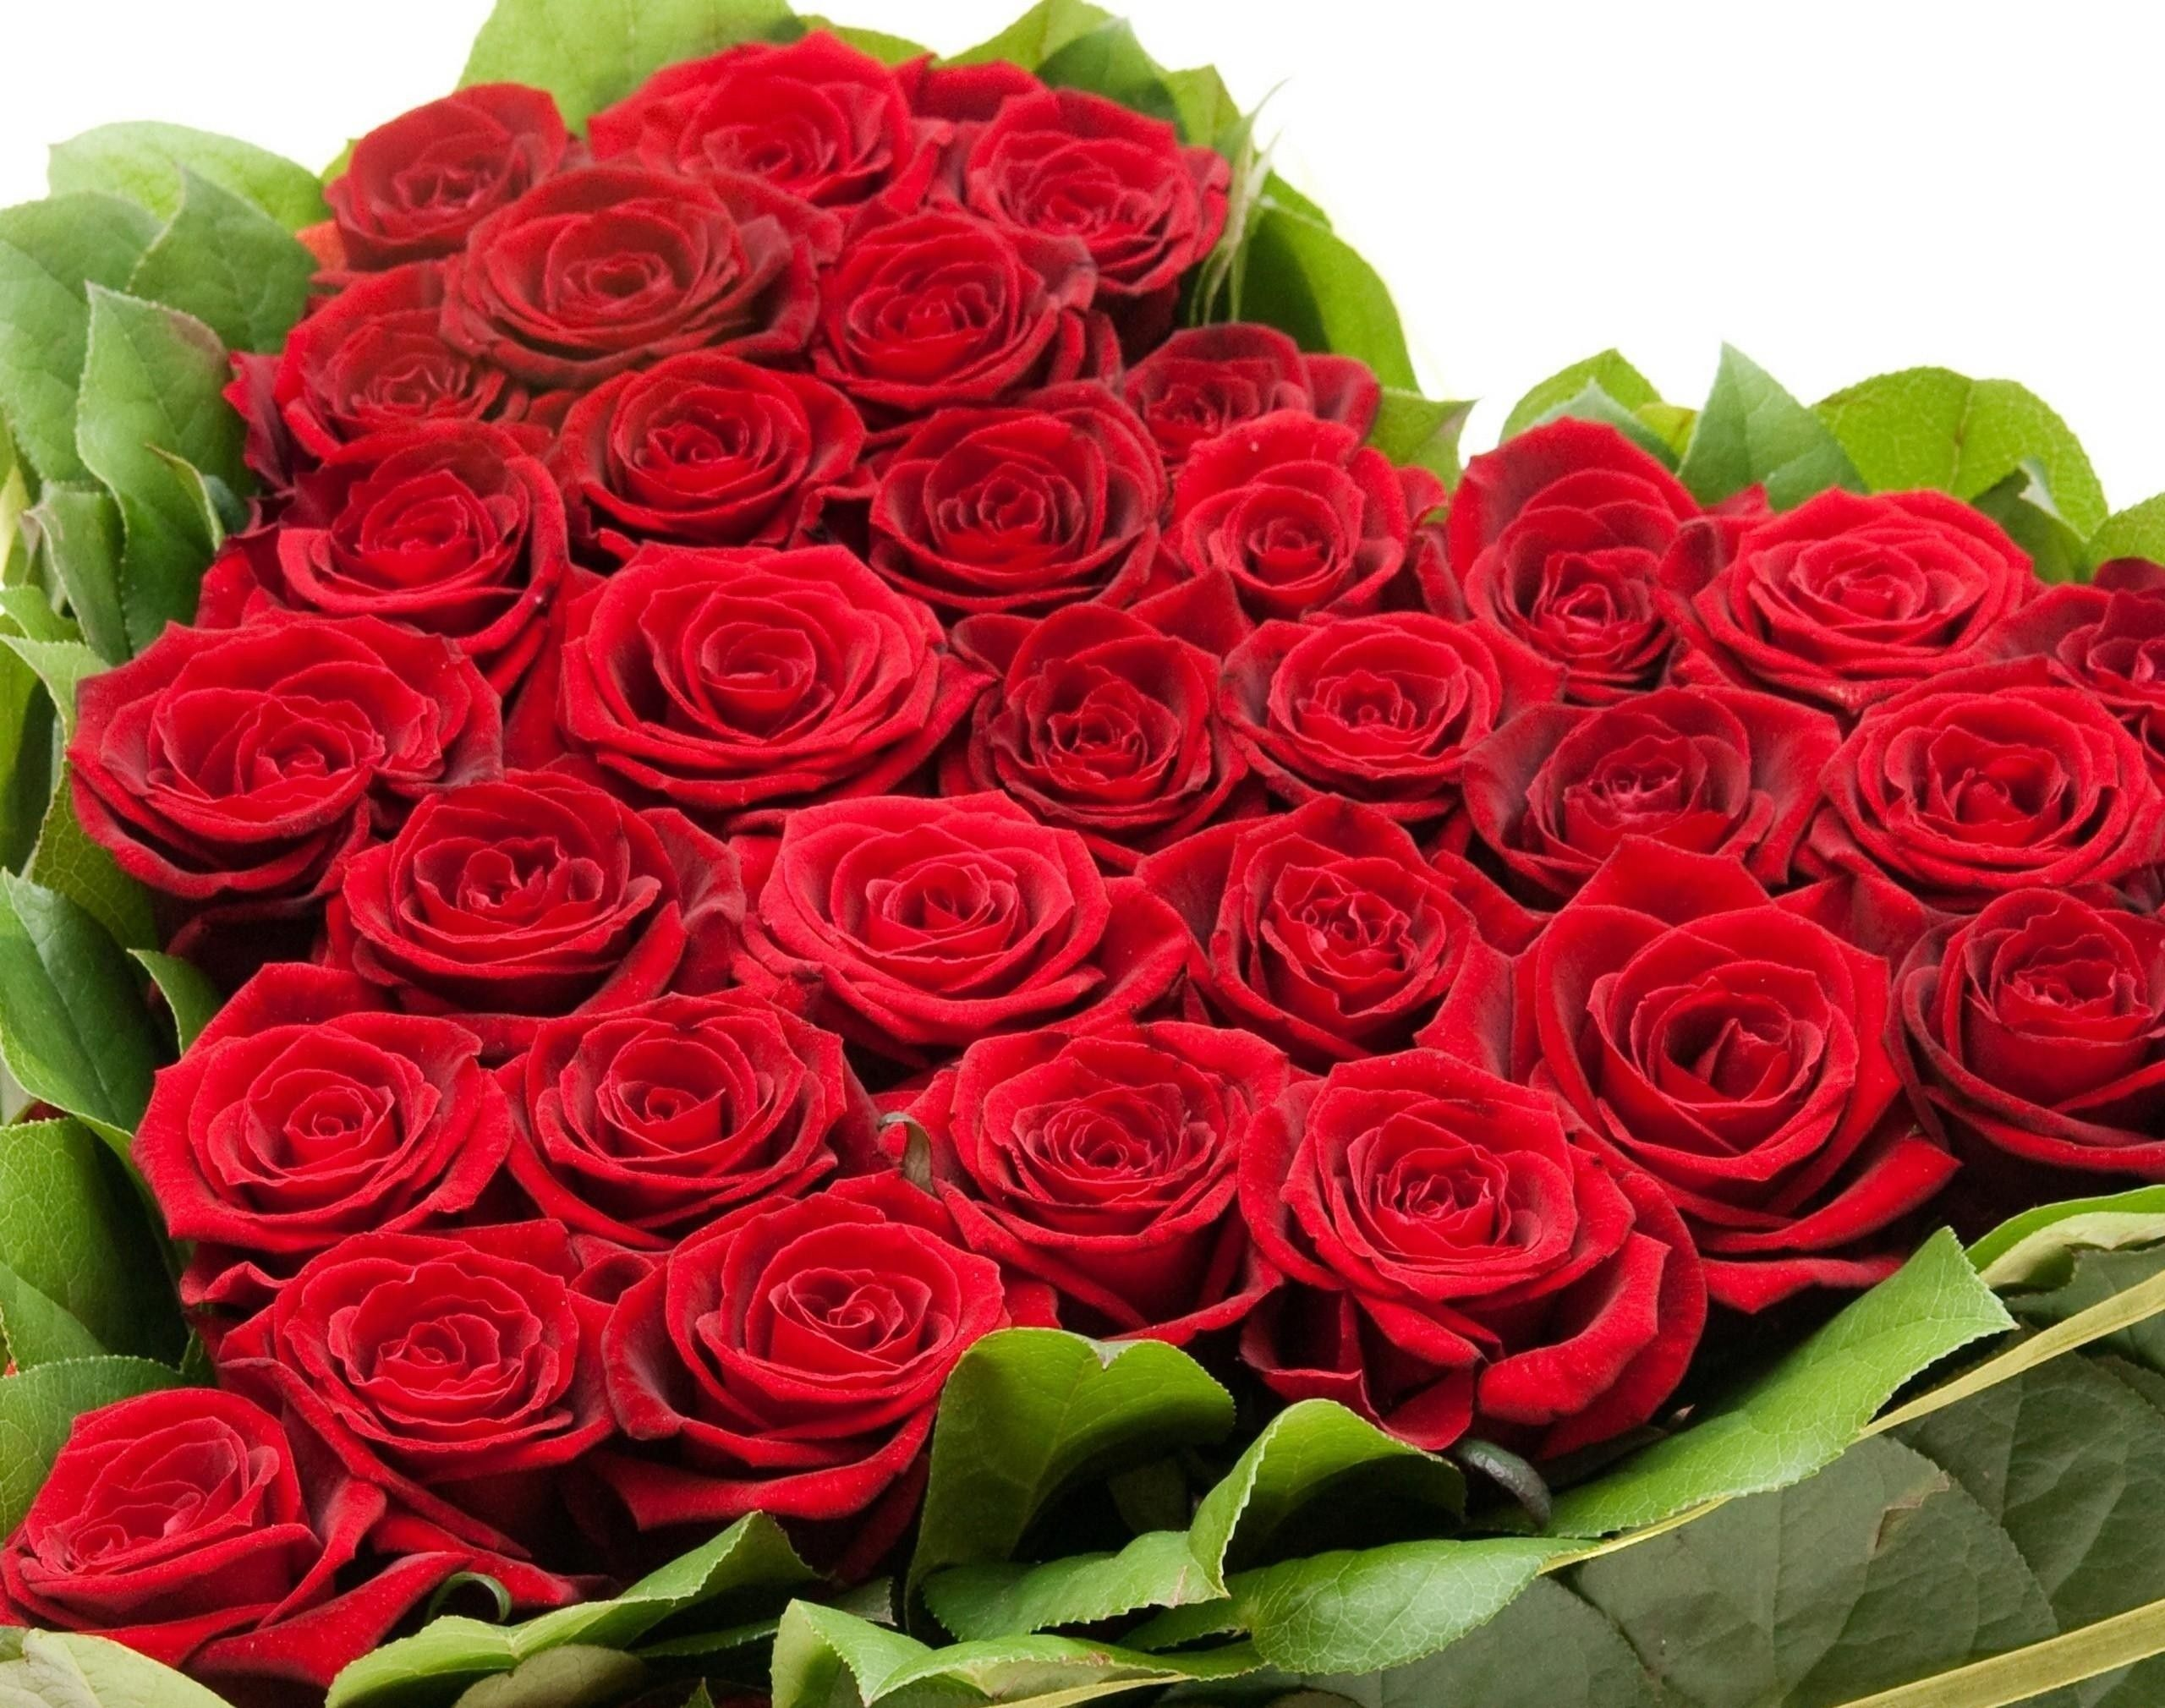 Flowers Images Roses For Free Download 5 Mobile Wallpapers